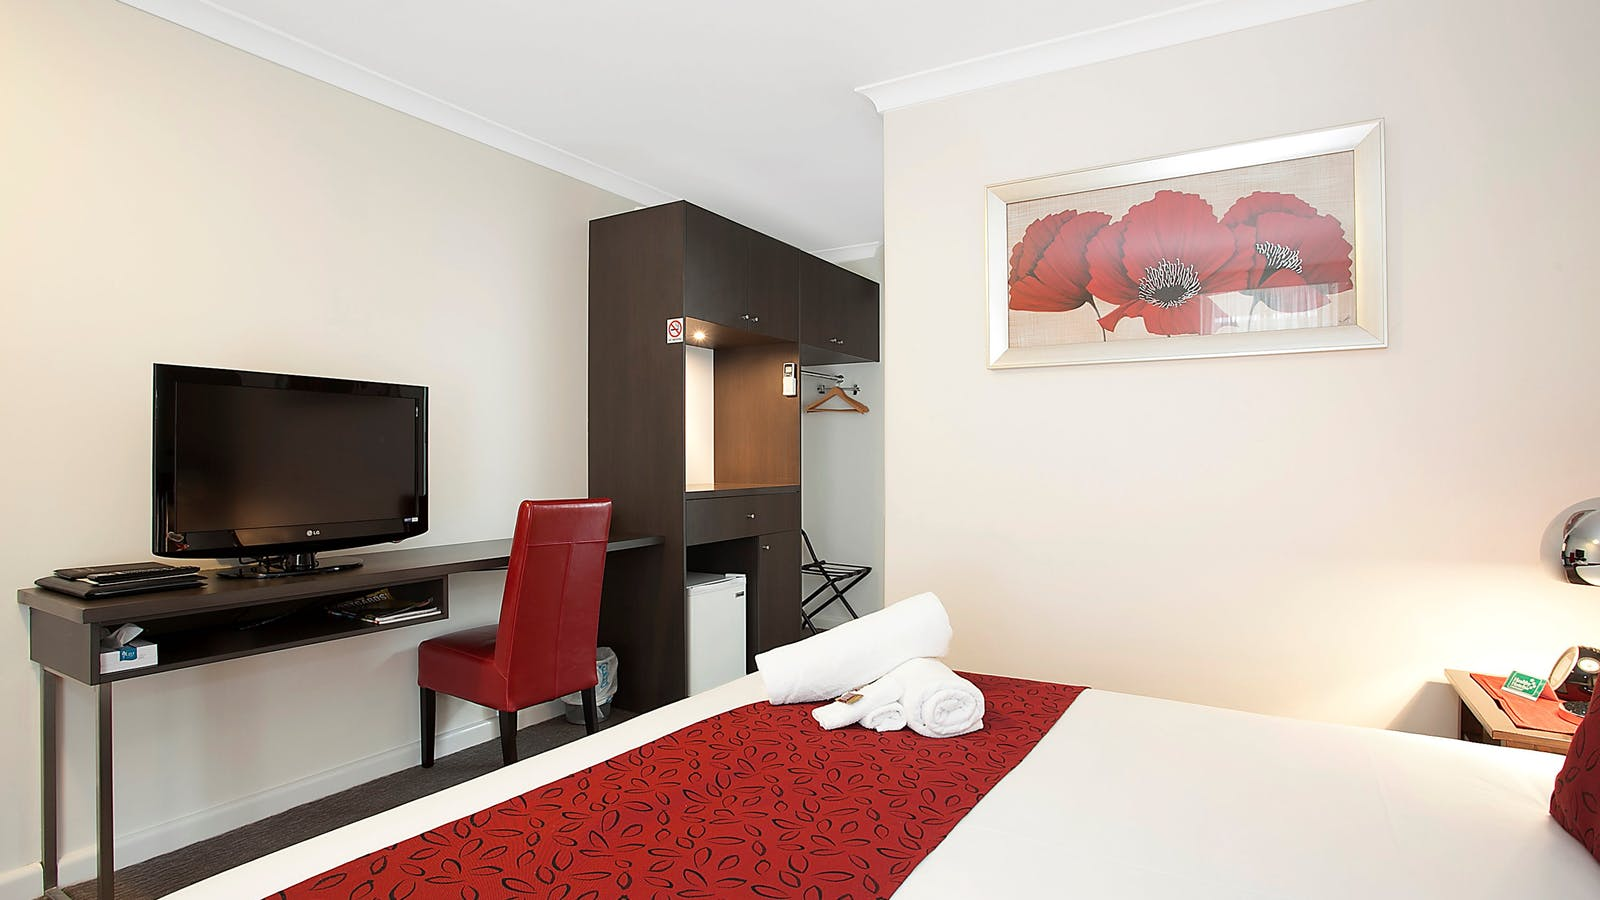 Deluxe King Room with flat screen TV with Foxtel